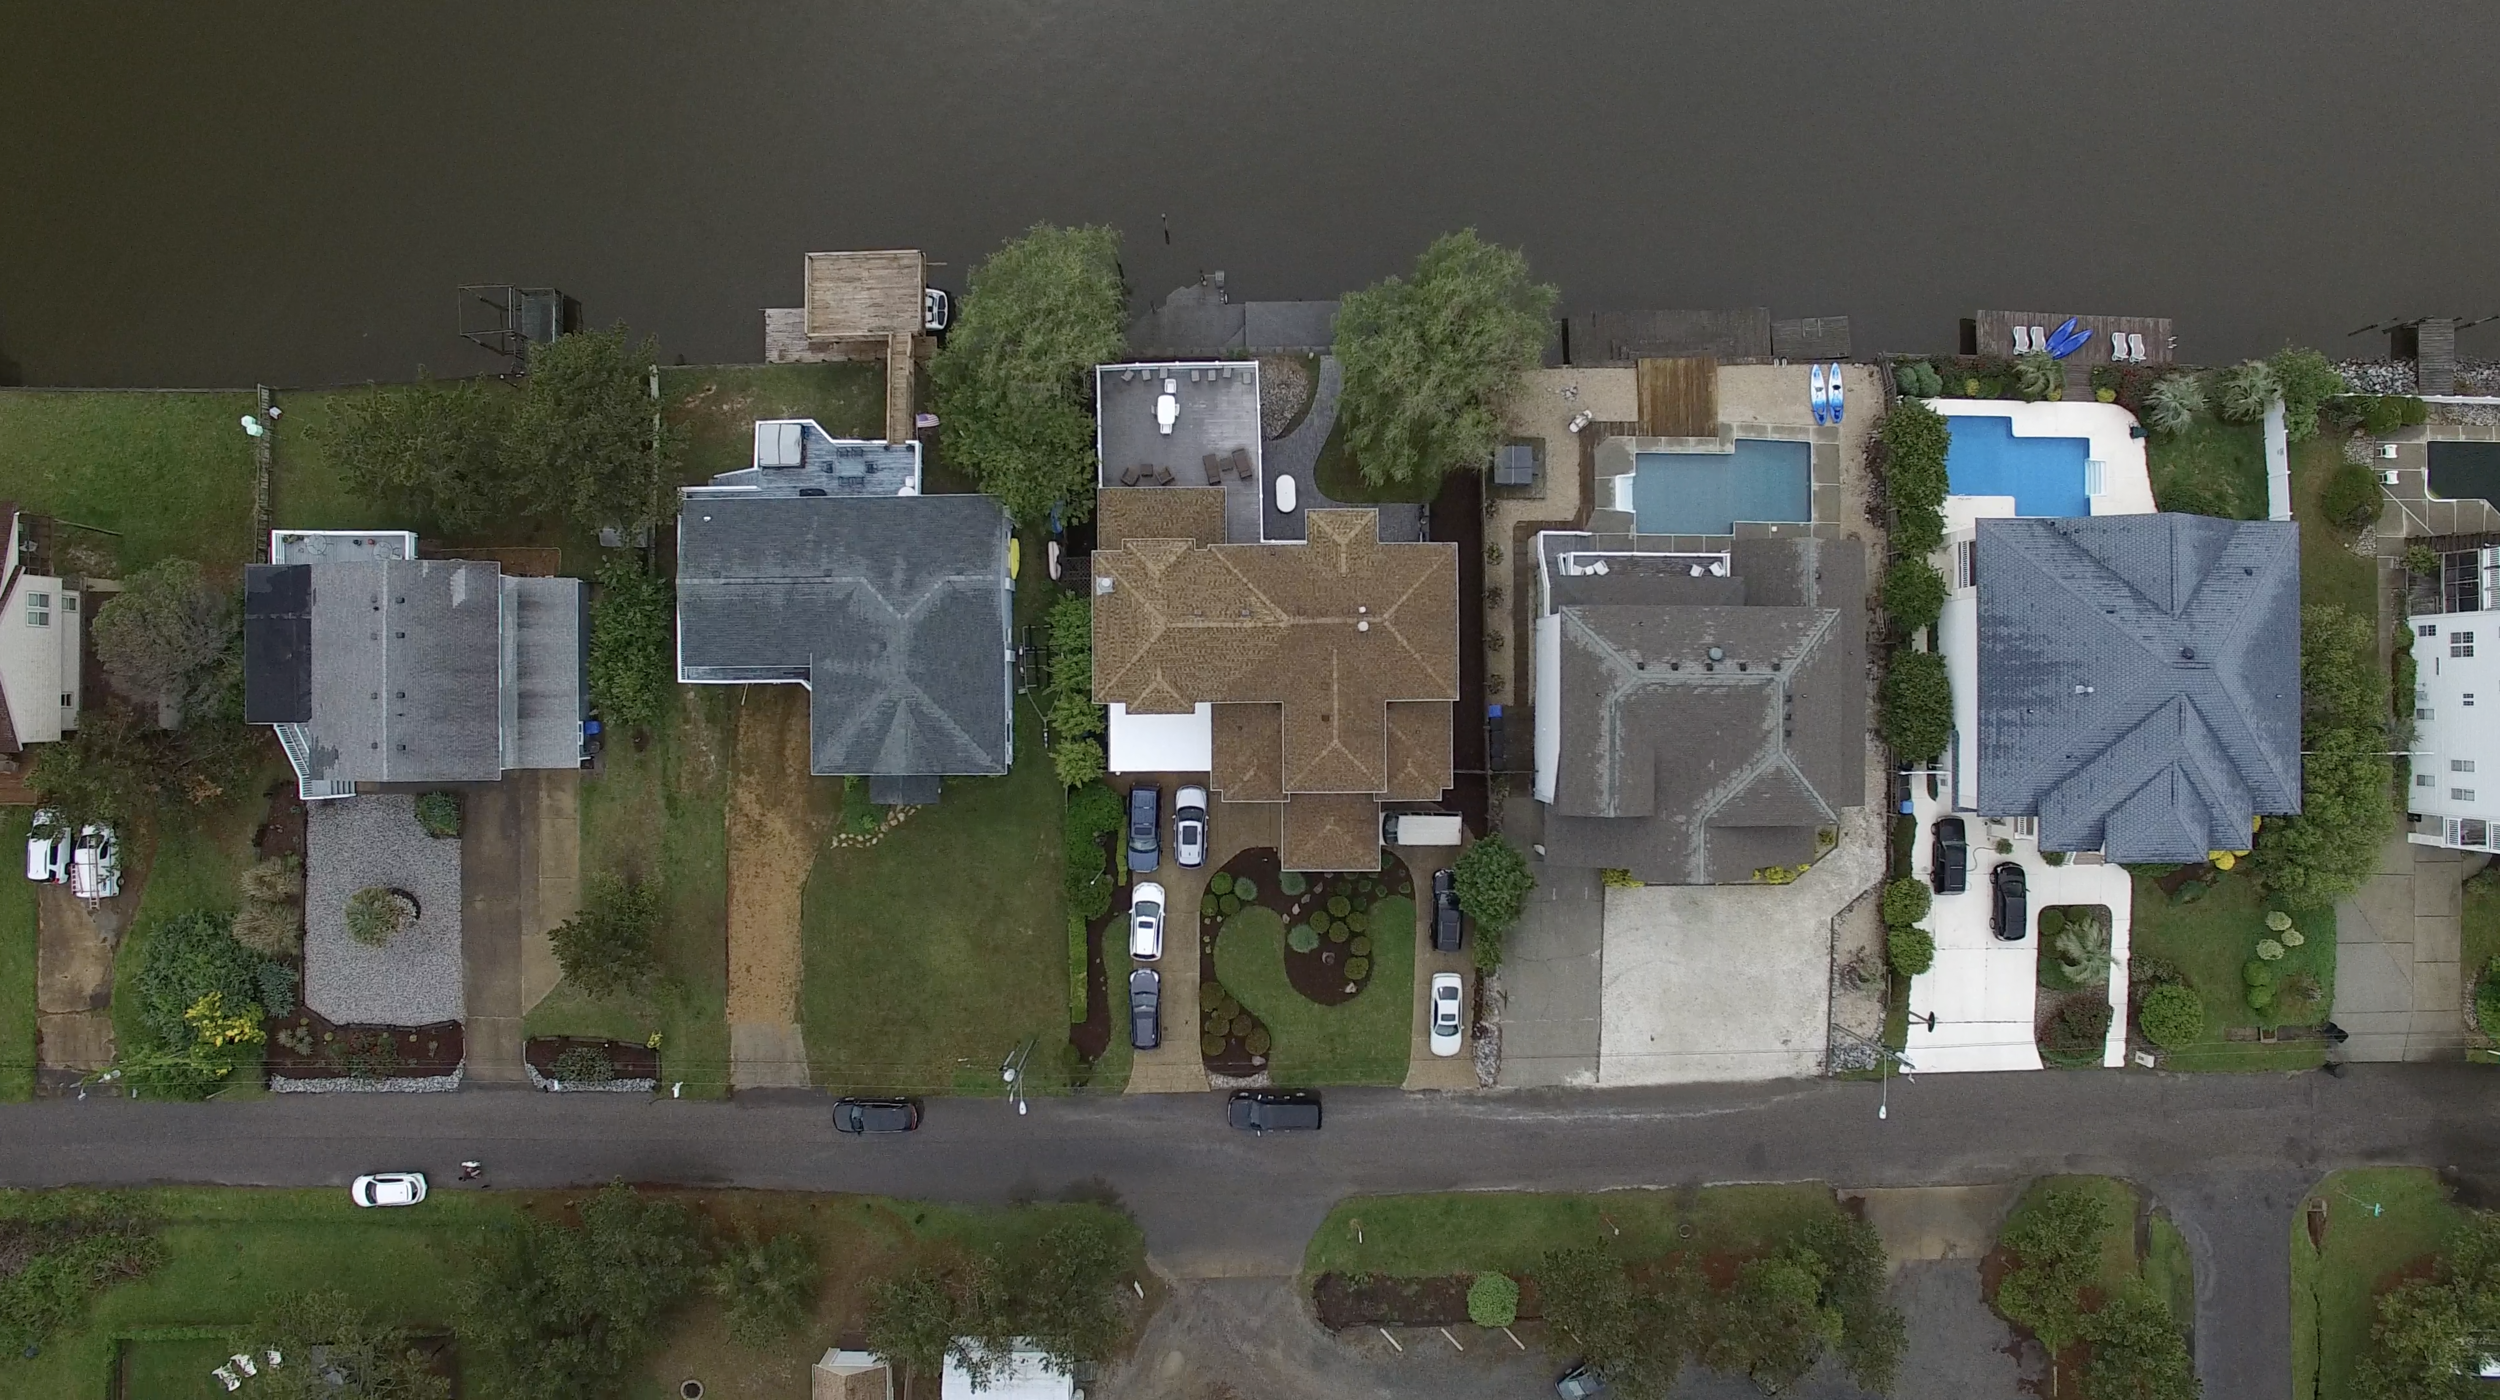 REAL ESTATE IMAGES THAT SELL - We offer Professional Photography, Video, and FAA Certified Aerial Dronevisuals for your Real Estate listings.